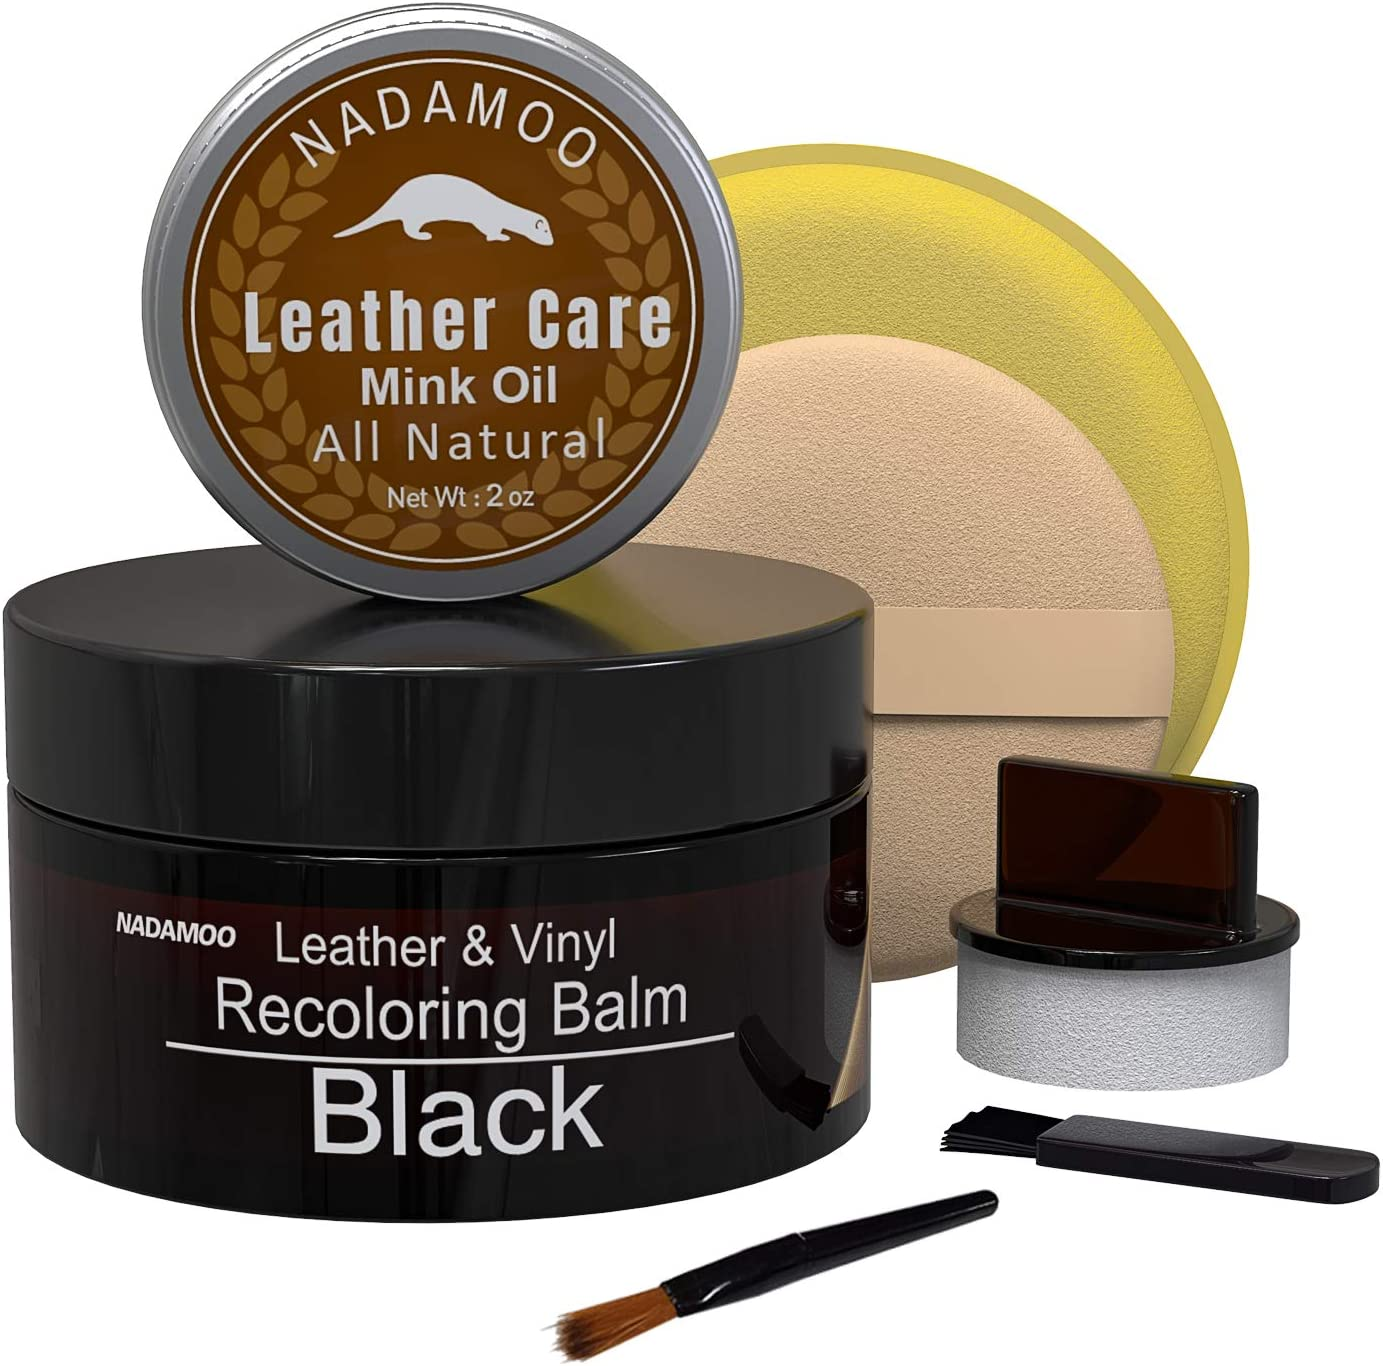 NADAMOO Black Leather Recoloring Balm with Mink Oil Leather Conditioner, Leather Repair Kits for Couches, Restoration Cream Scratch Repair Leather Dye for Vinyl Furniture Car Seat, Sofa, Shoes